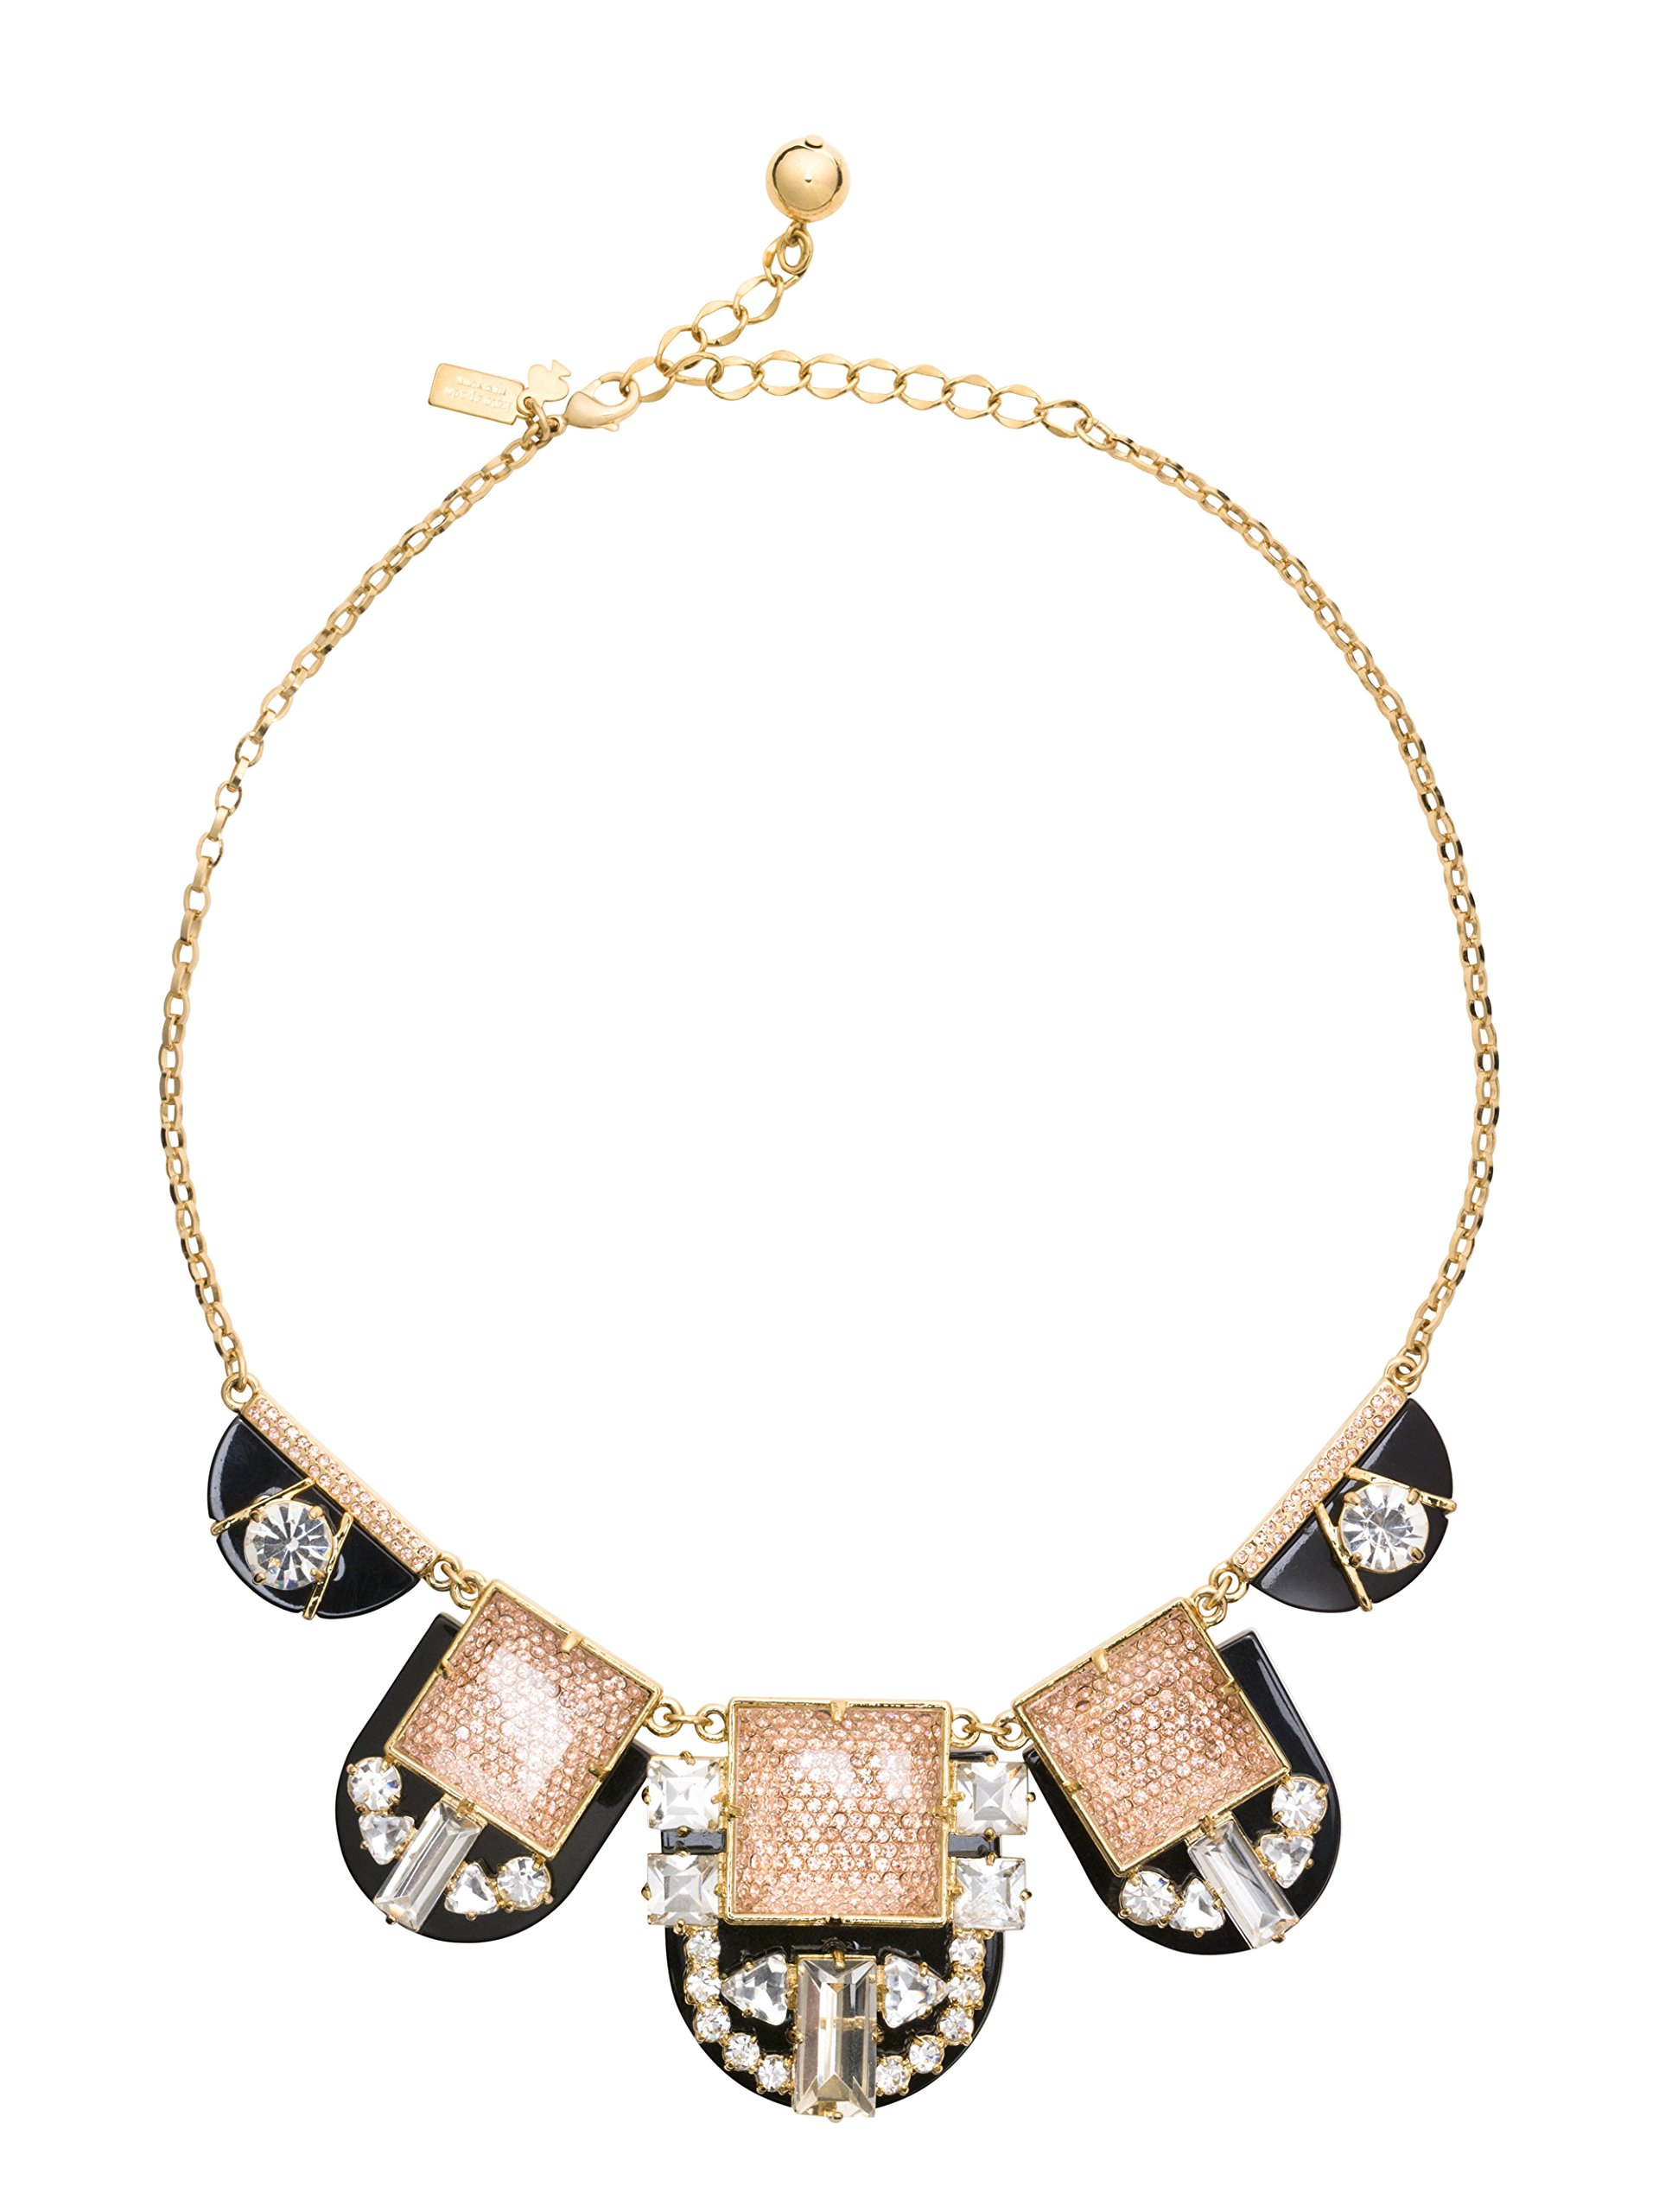 Kate Spade New York 'Imperial Tile' Collar Necklace, Multi